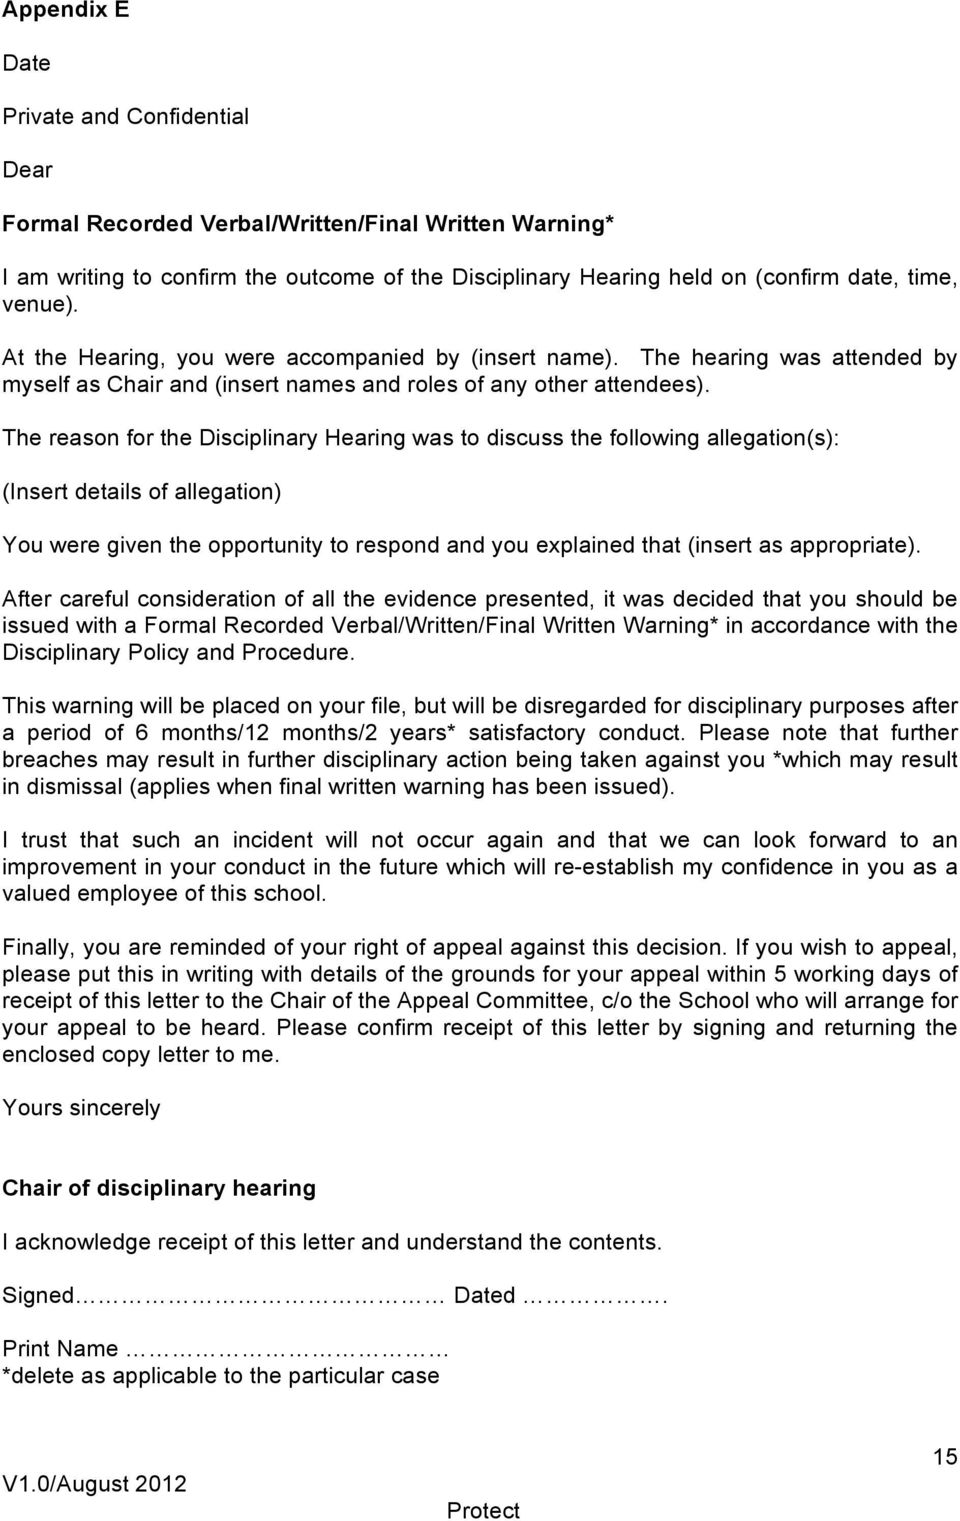 The reason for the Disciplinary Hearing was to discuss the following allegation(s): (Insert details of allegation) You were given the opportunity to respond and you explained that (insert as